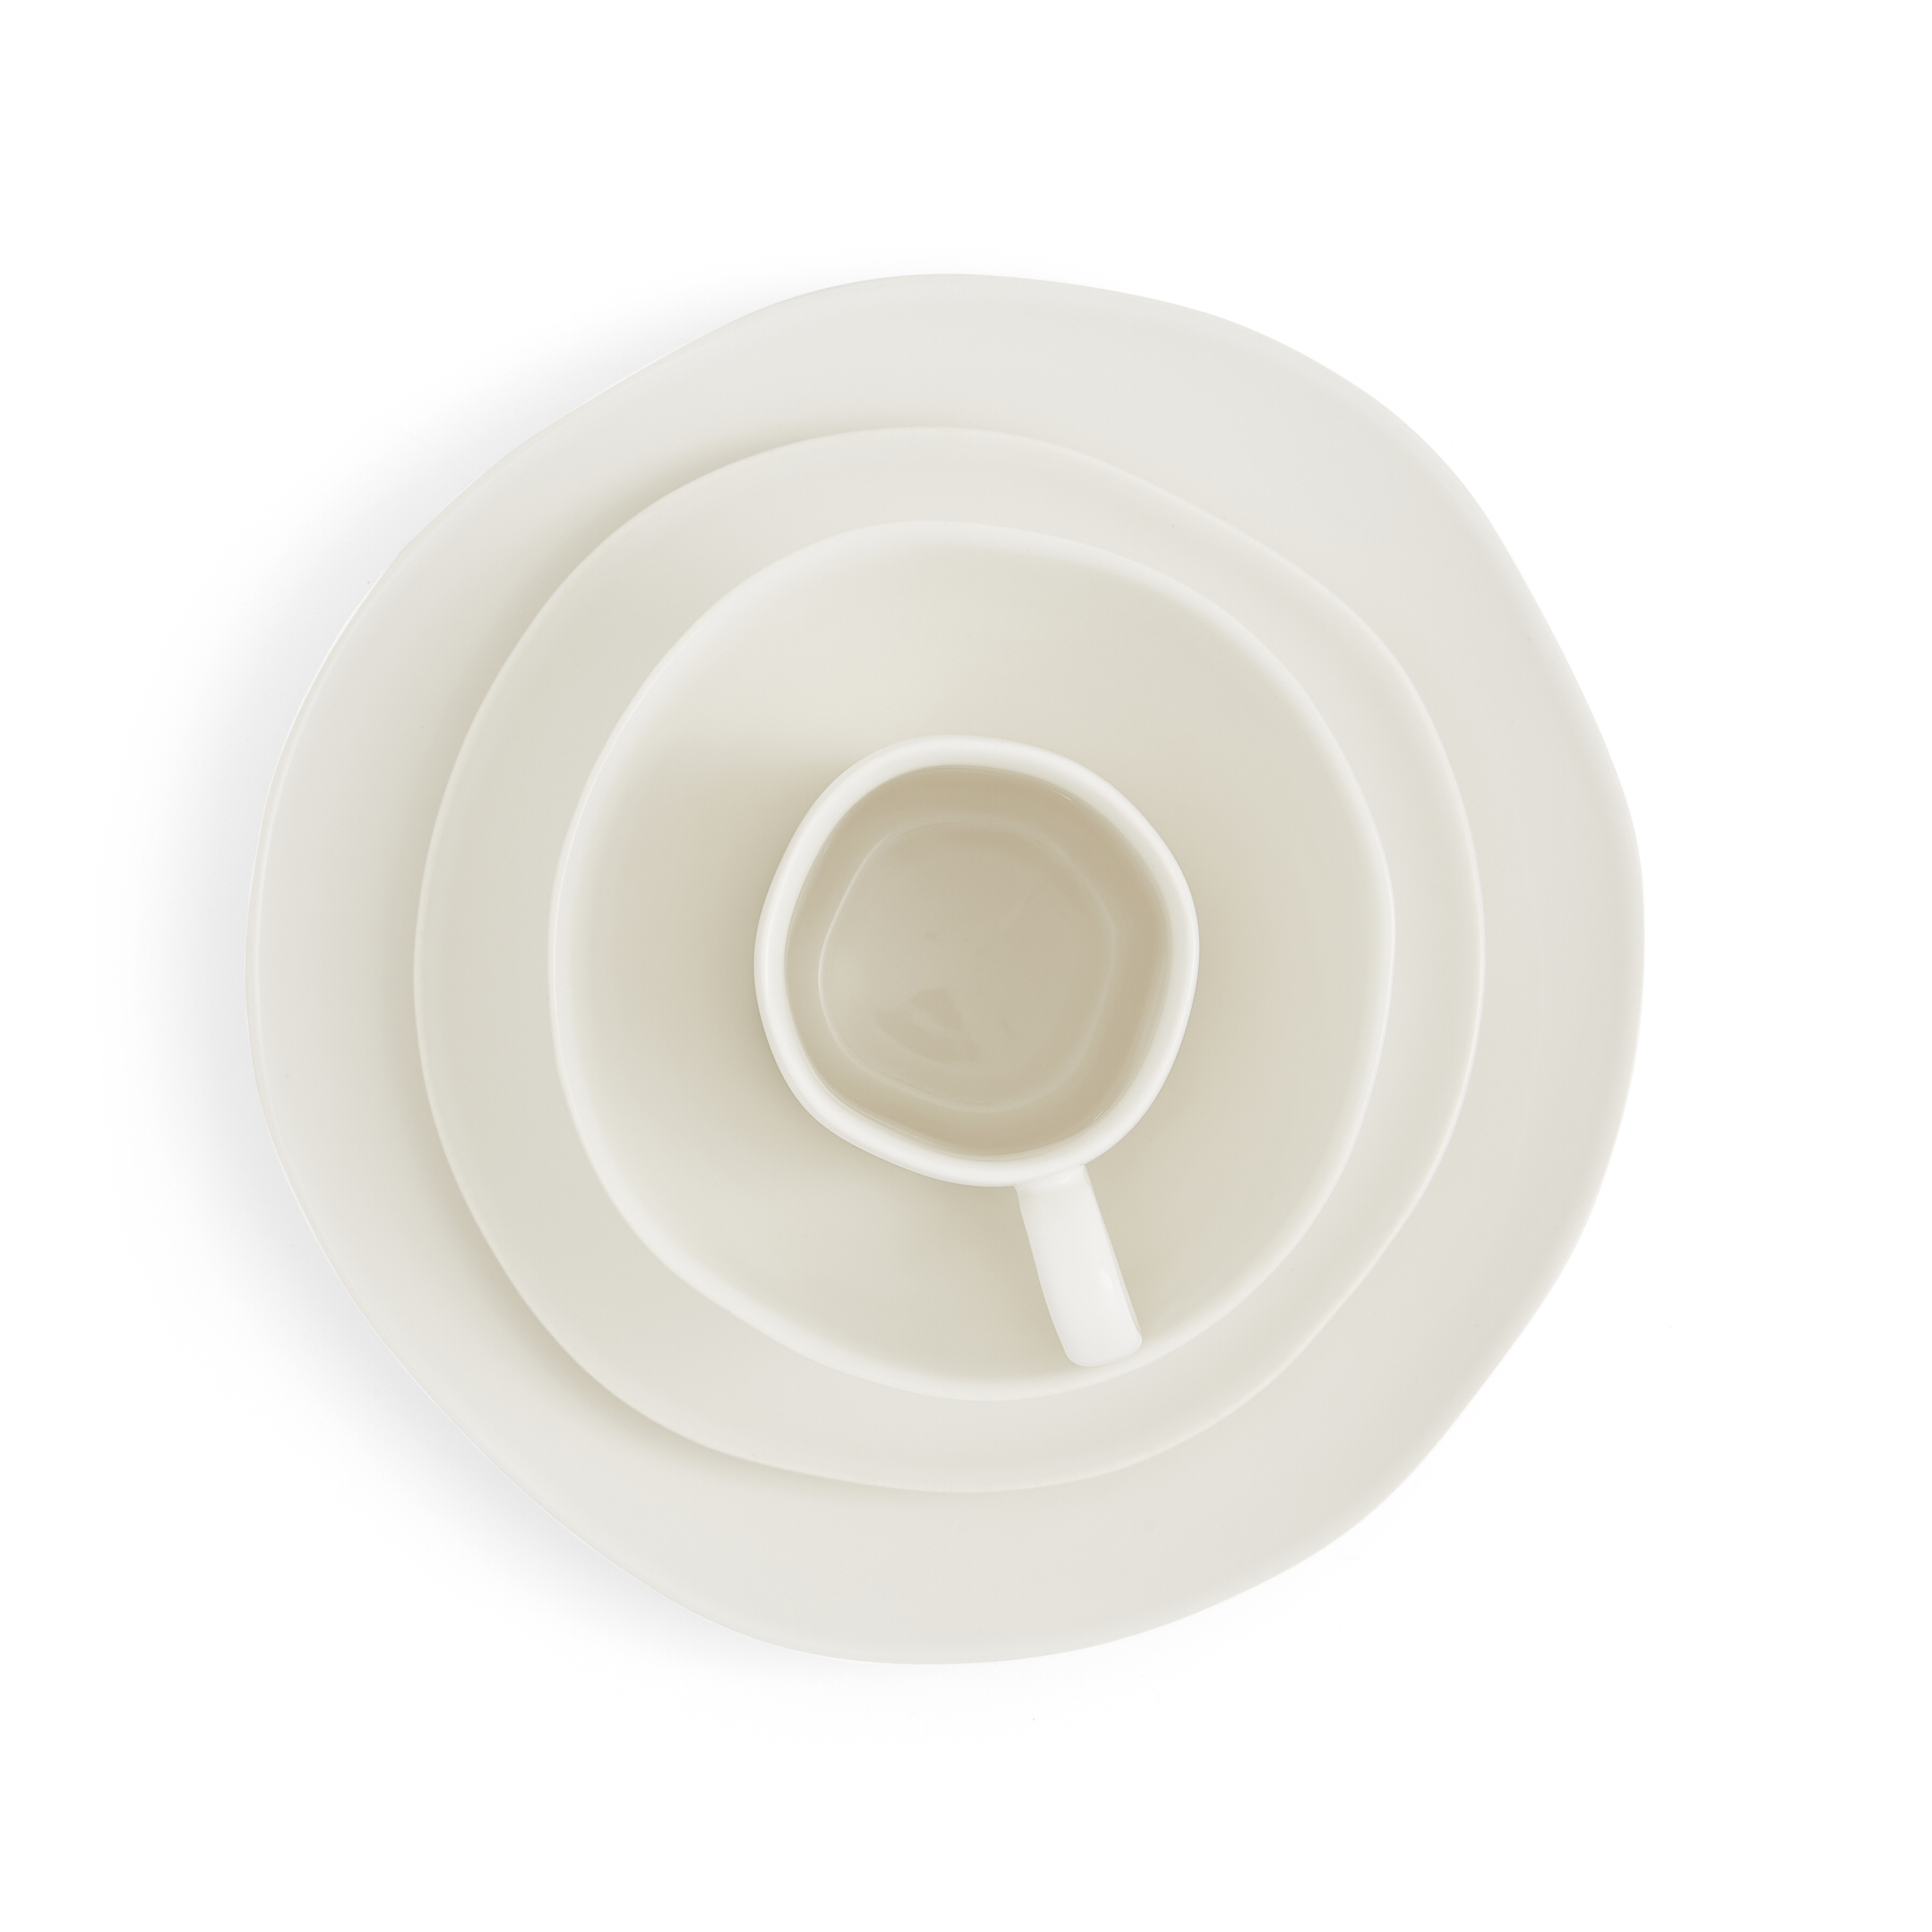 Sophie Conran Arbor 4 Piece Place Setting- Creamy White image number 1